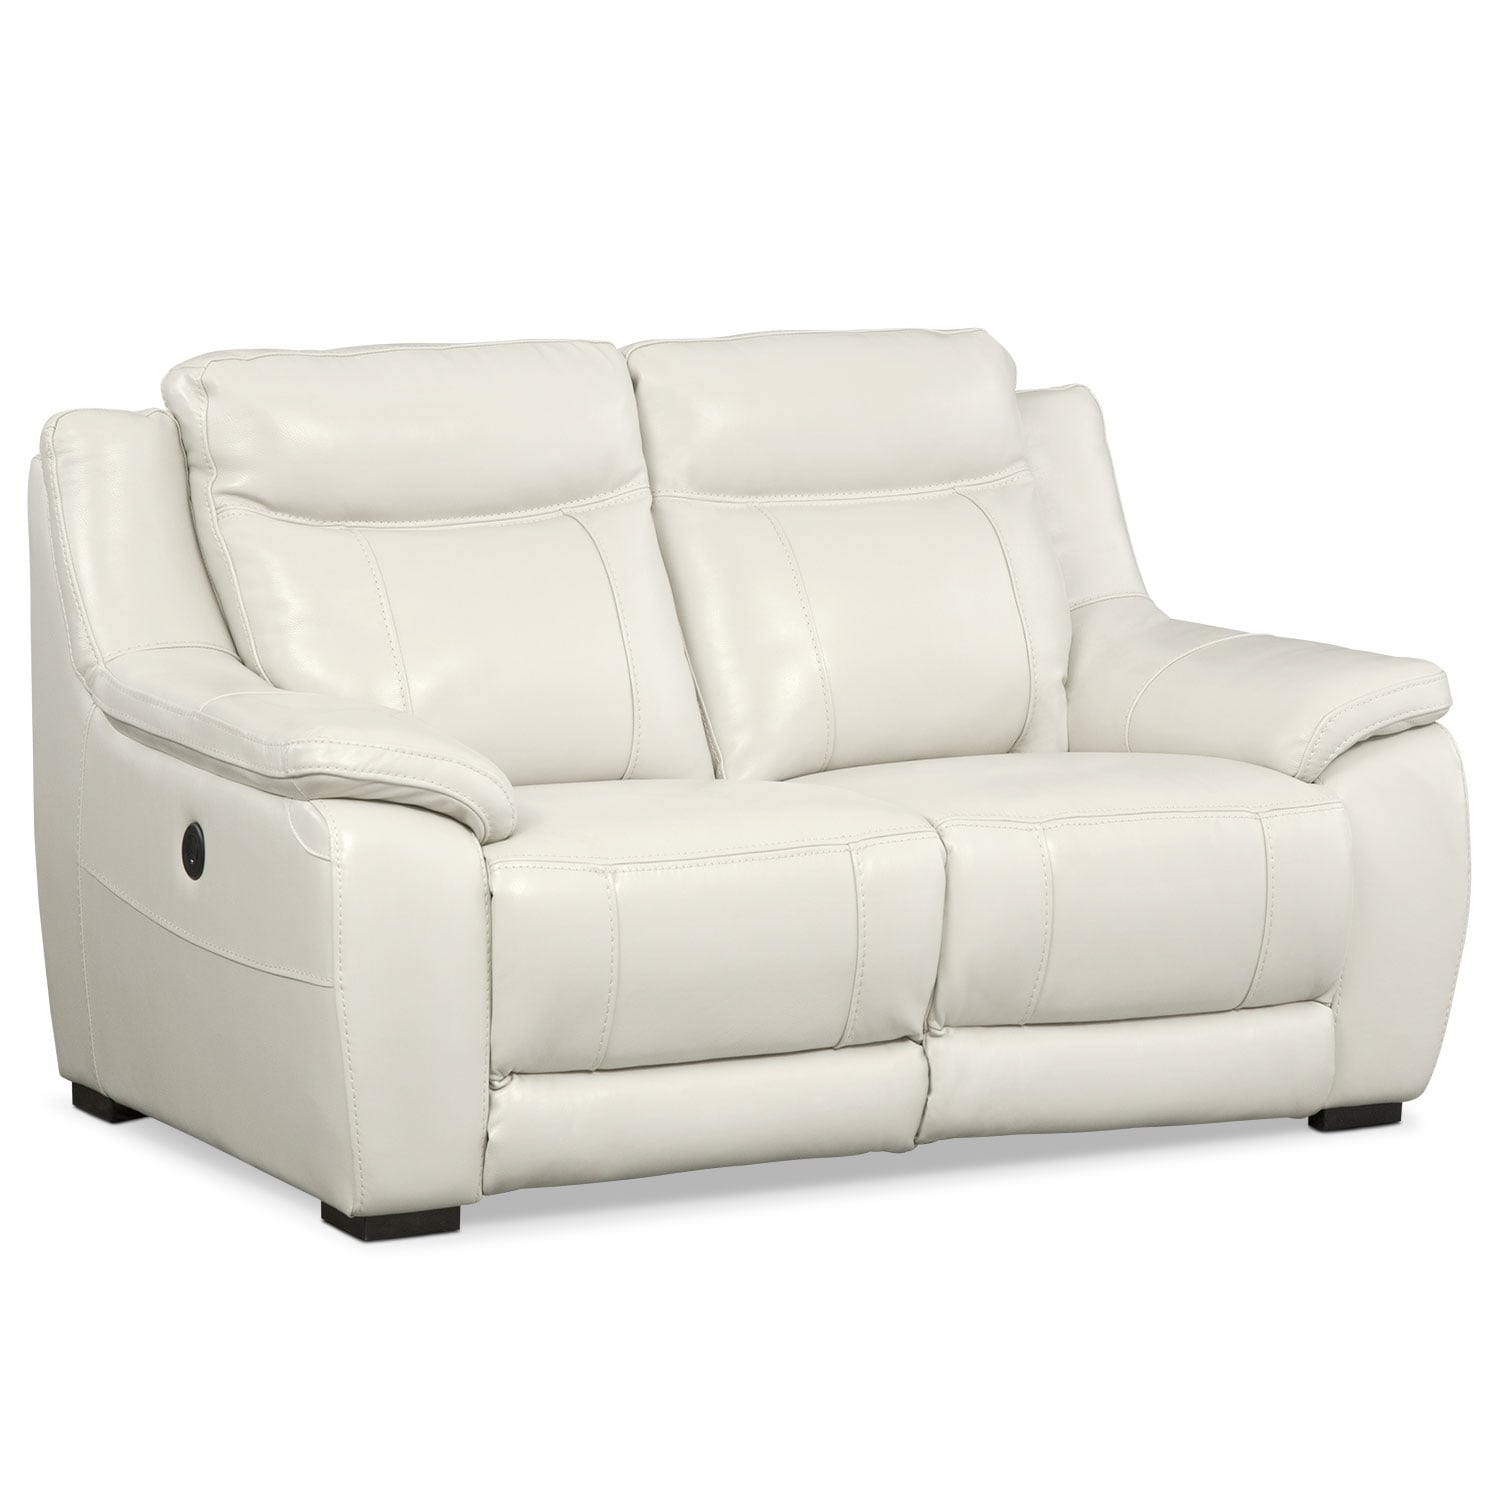 Lido power reclining sofa reclining loveseat and recliner Power reclining sofas and loveseats